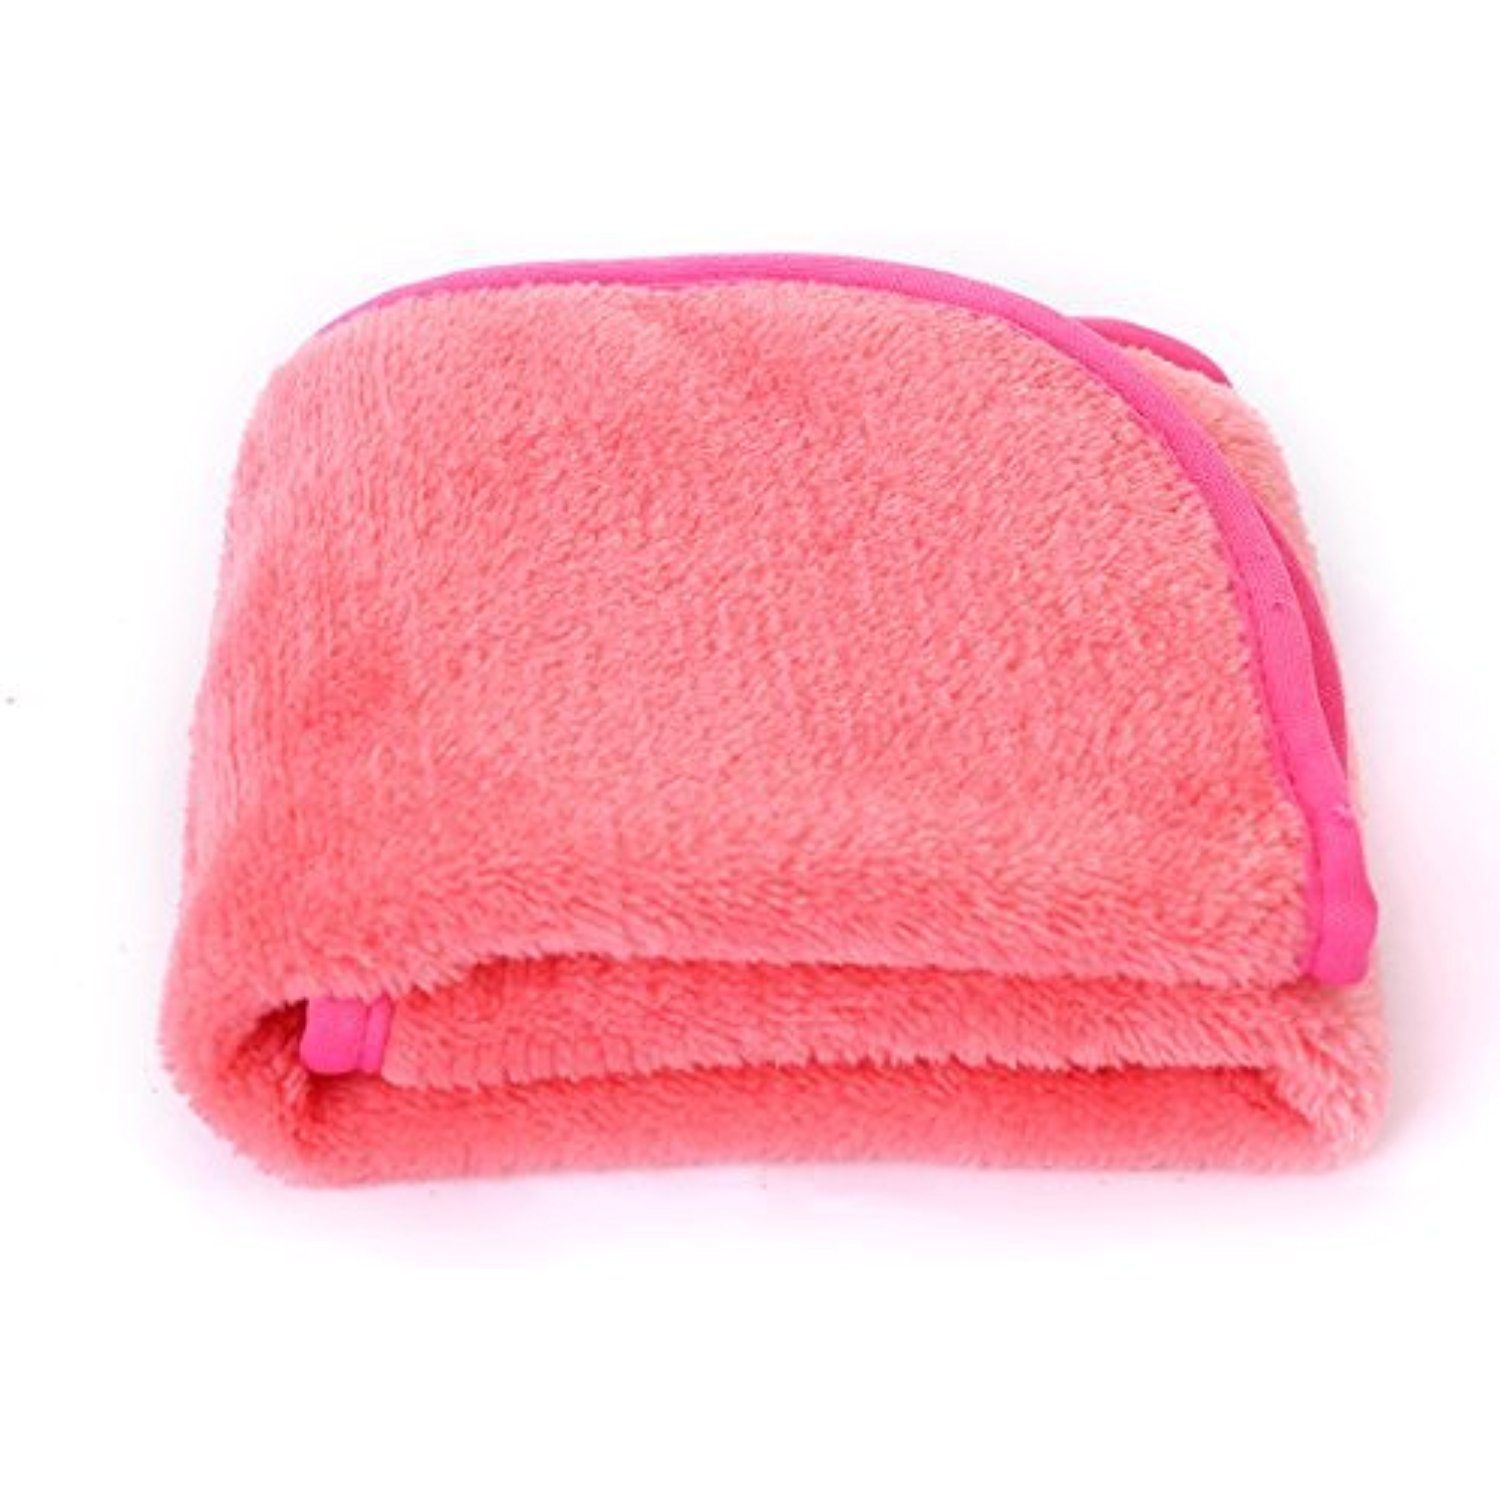 Makeup Remover Cloth Pack Chemical Free Makeup Towel